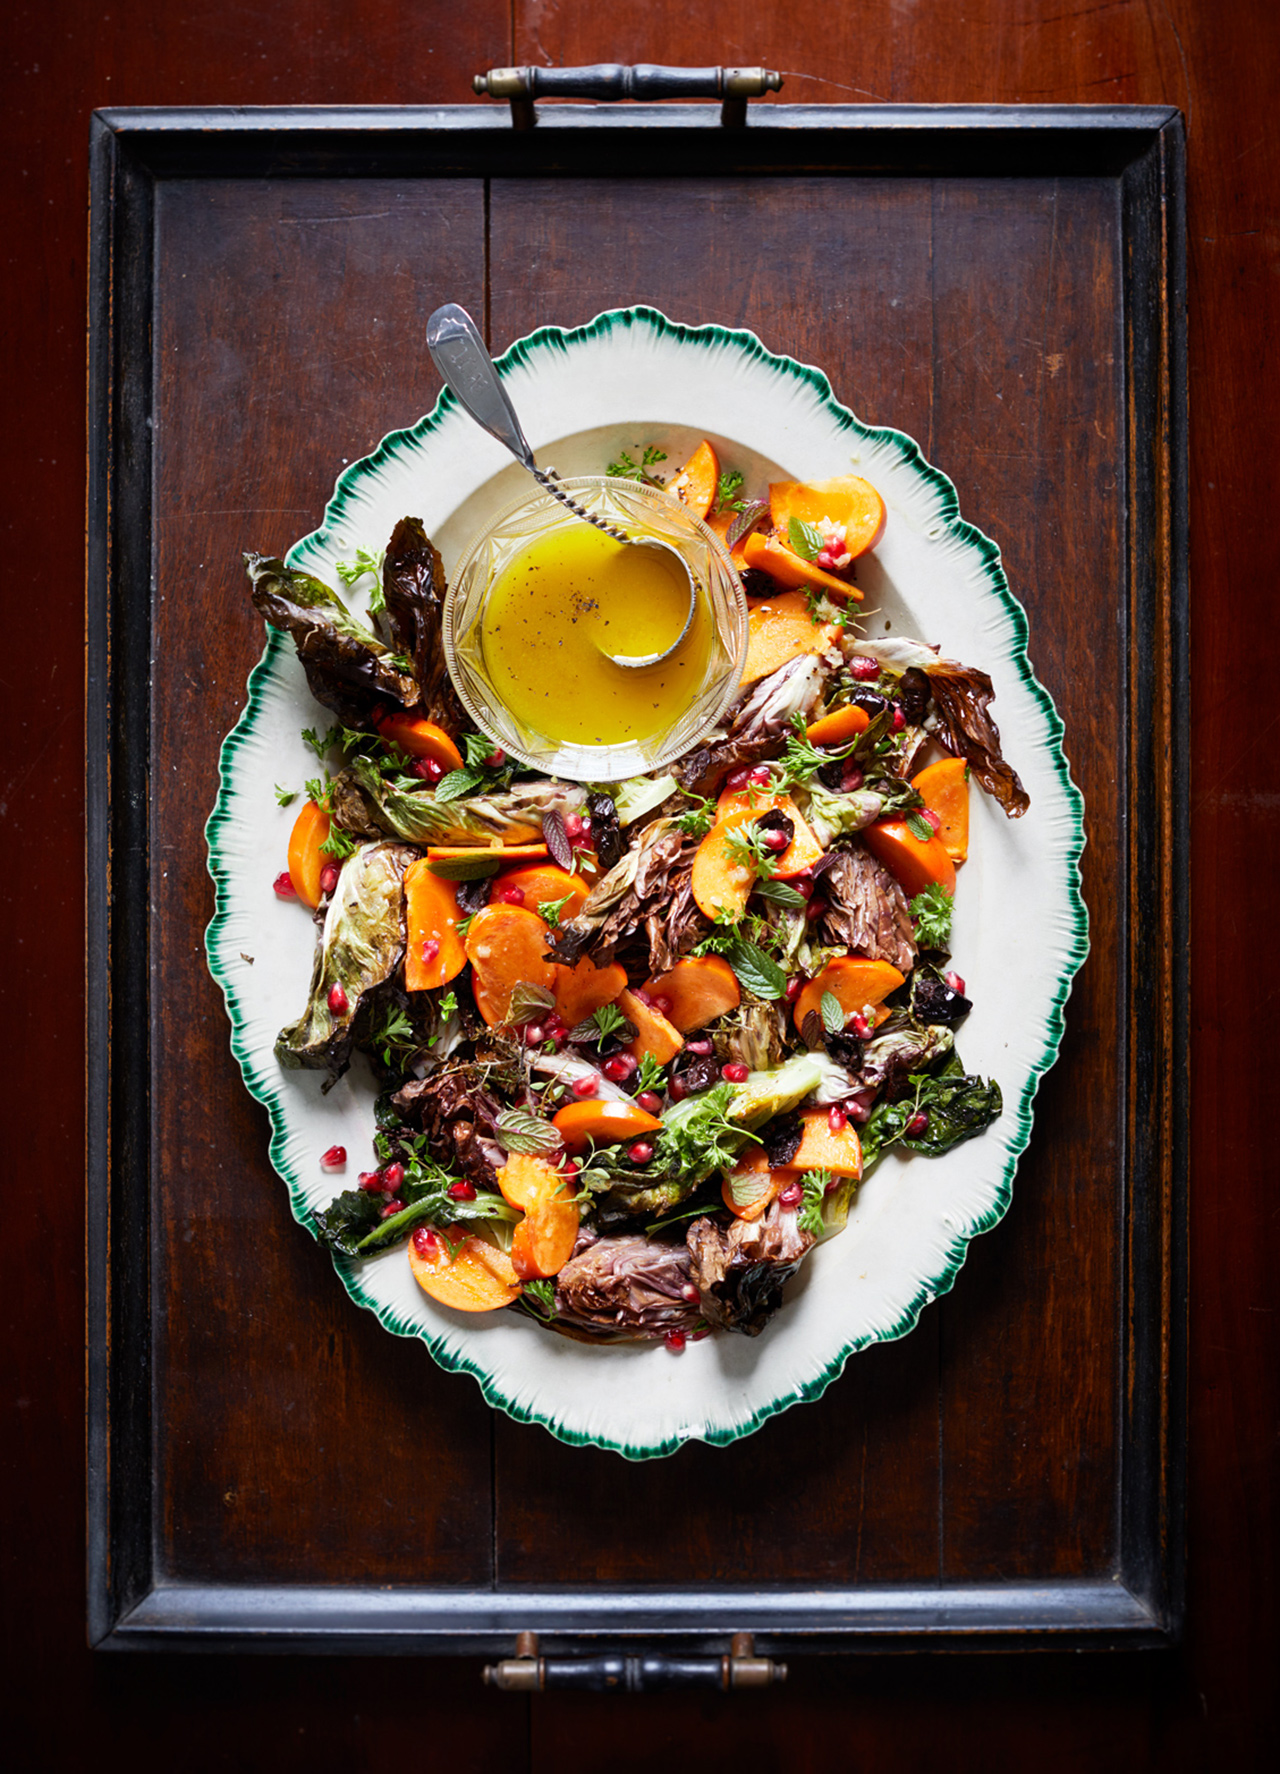 persimmons and roasted chicories with shallot vinaigrette served on a white plate